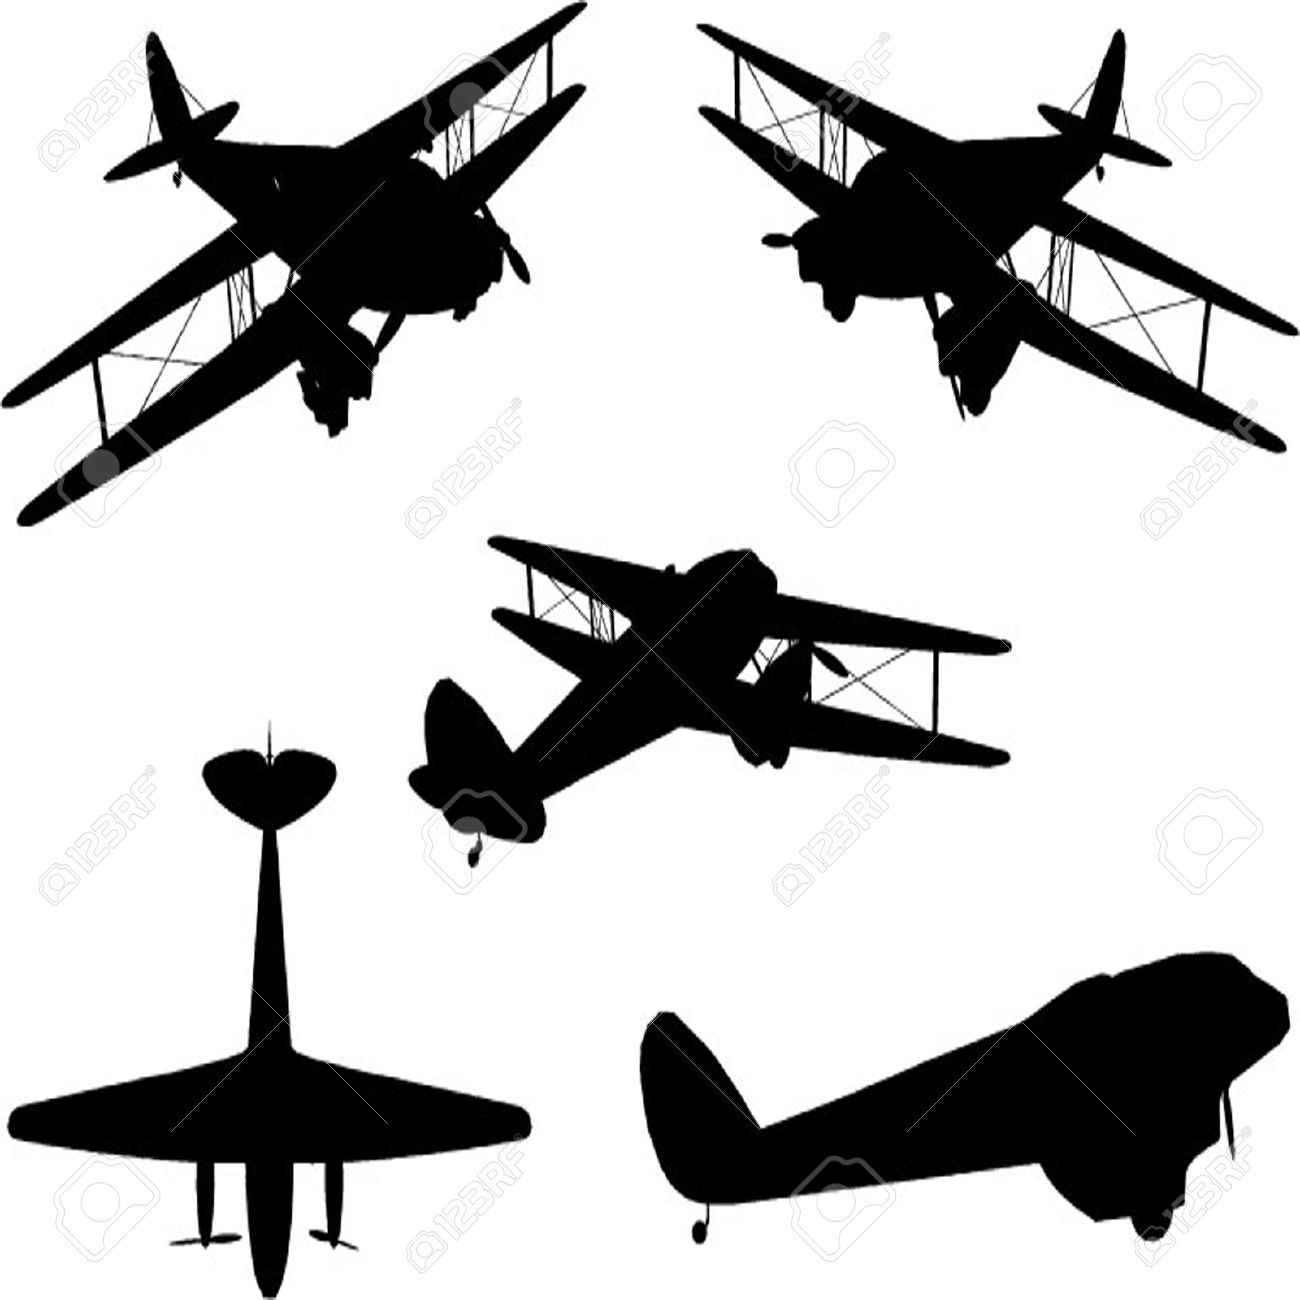 Vintage Plane Silhouette Set Royalty Free Cliparts Vectors And